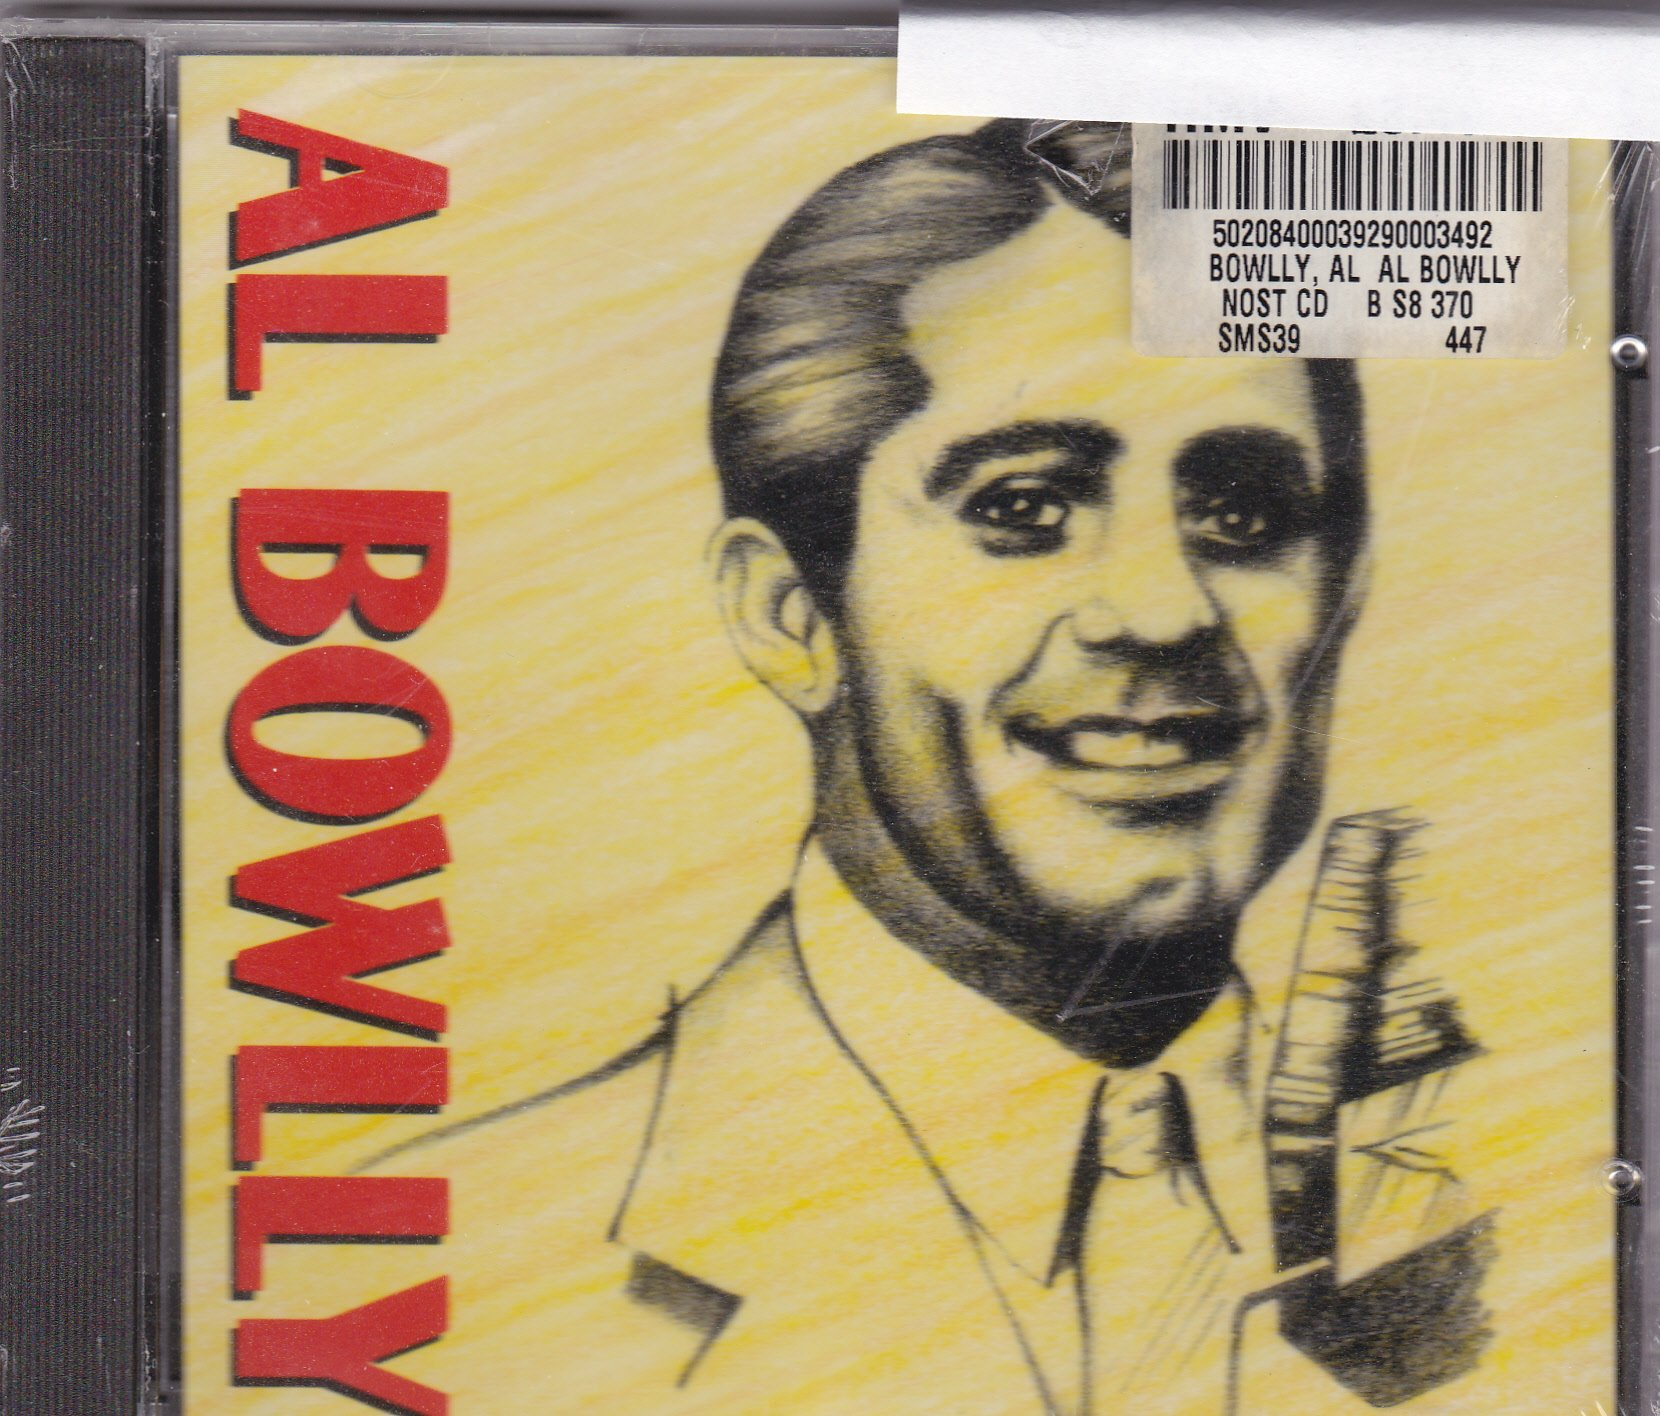 Al Bowlly by Smash